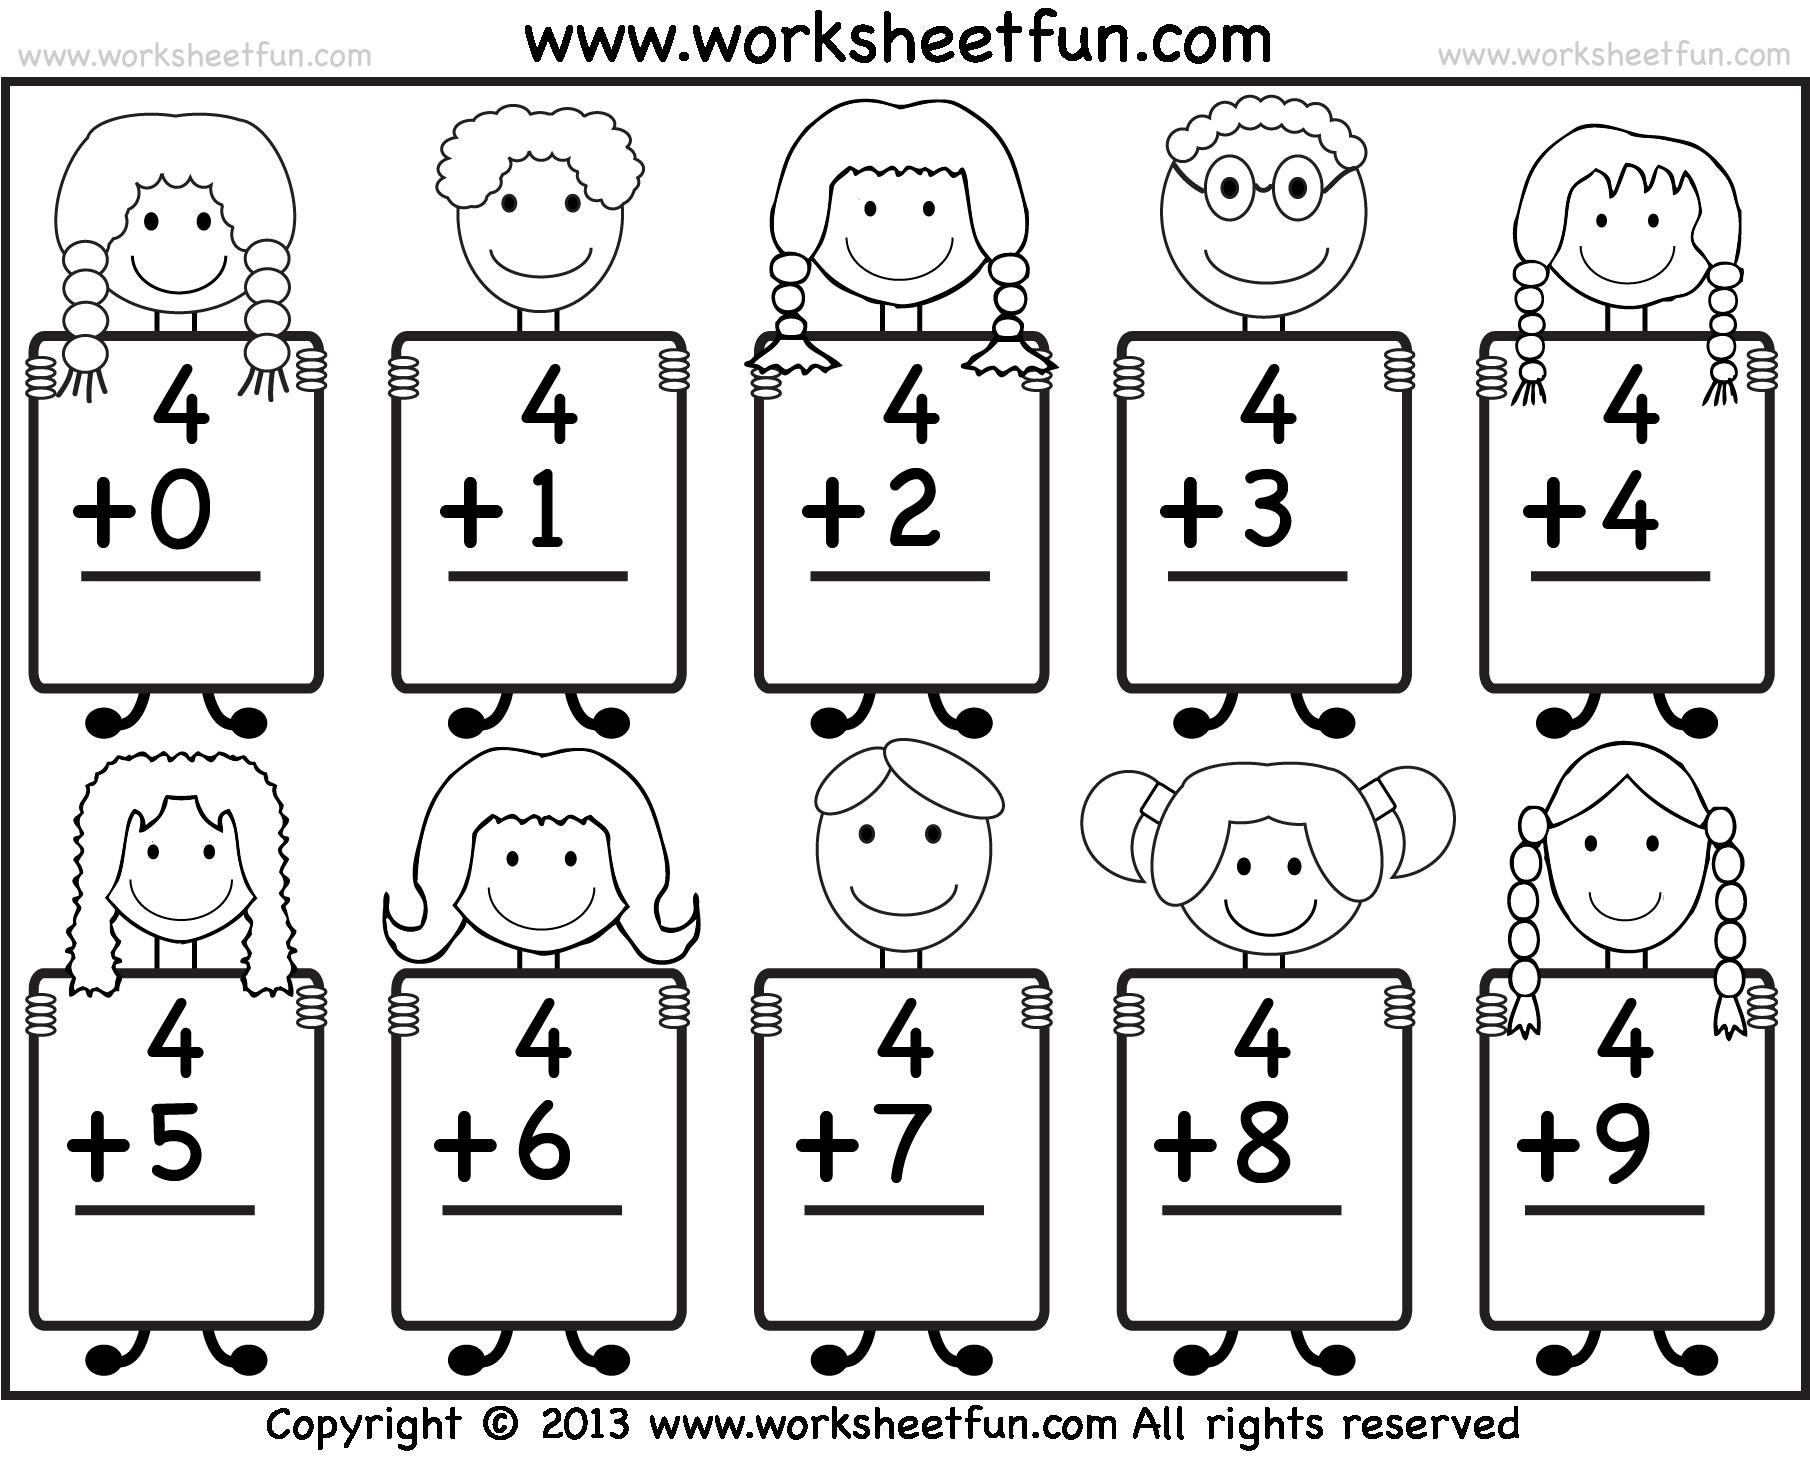 freeprintablemathworksheetsforkindergartenaddition1png – Free Printable Worksheets for Kindergarten Math